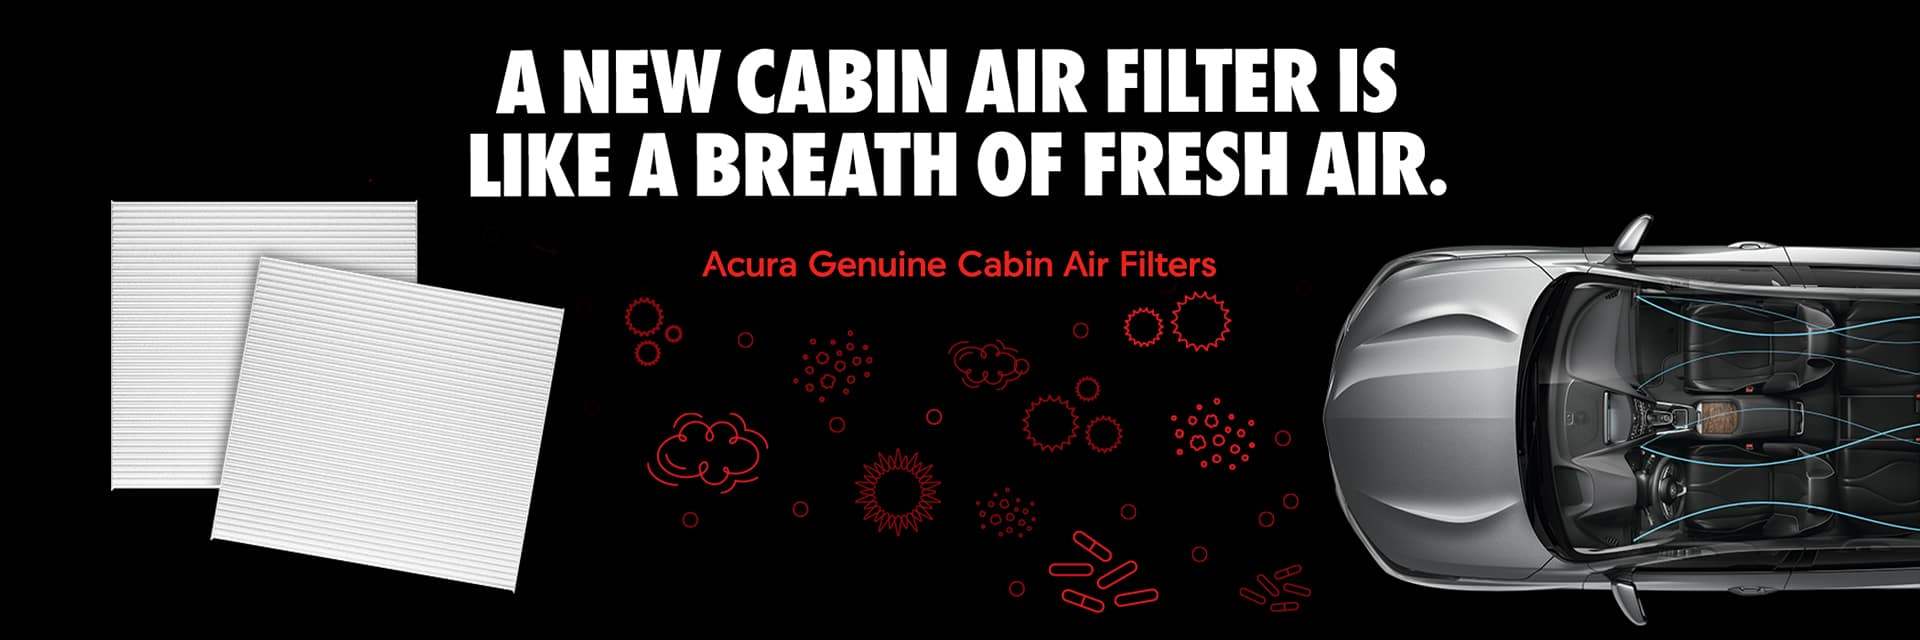 EAG_EAcura_Banner_Cabin_Air_Filter